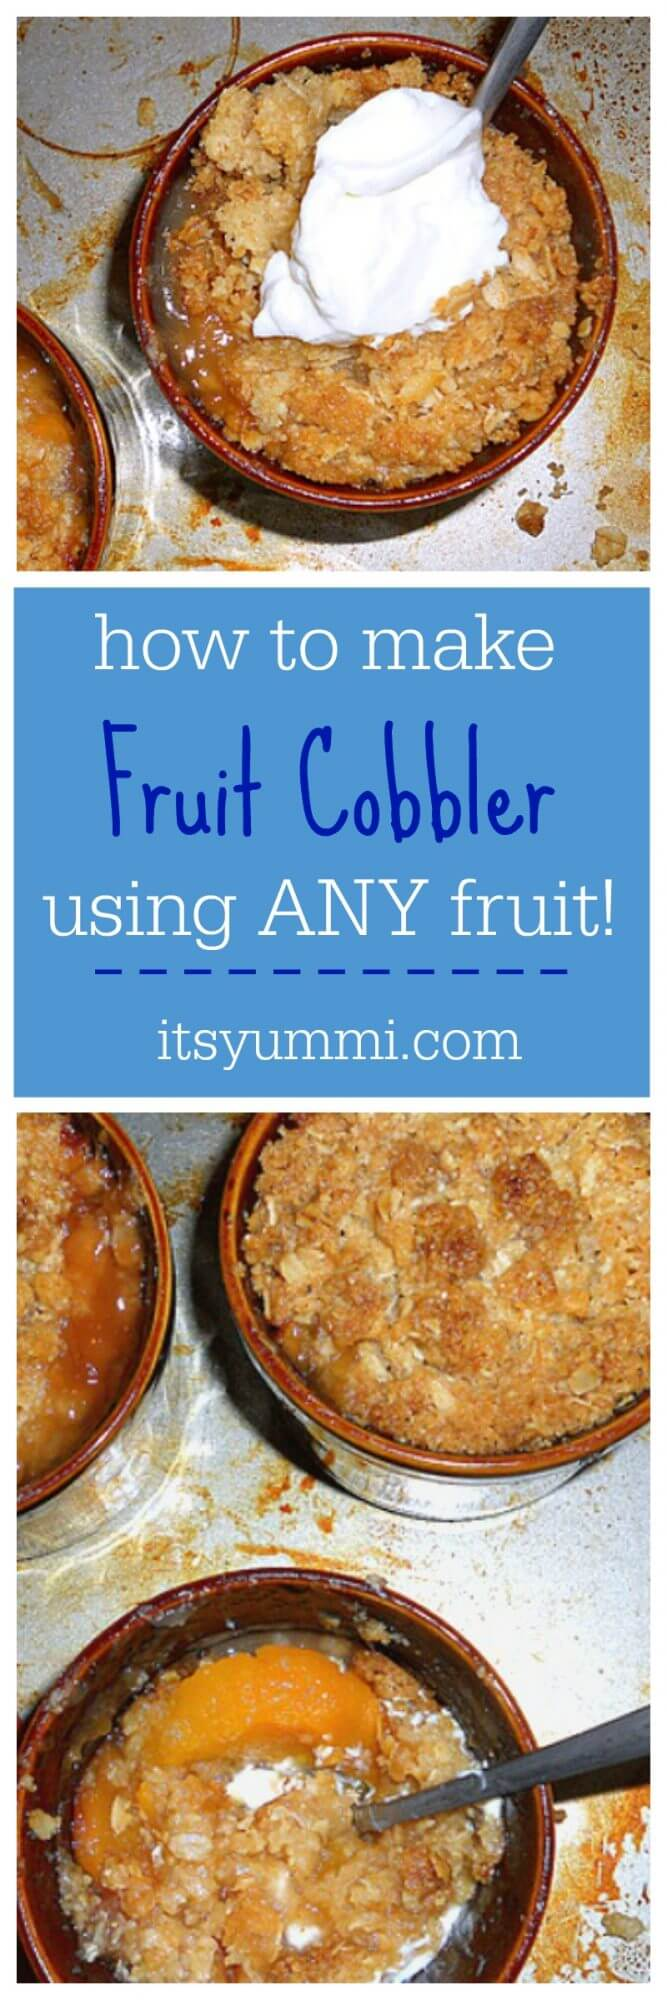 Learn how to make a fruit crisp recipe with almost ANY fruit you want! The recipe works for making fruit cobbler, too! Get it at itsyummi.com